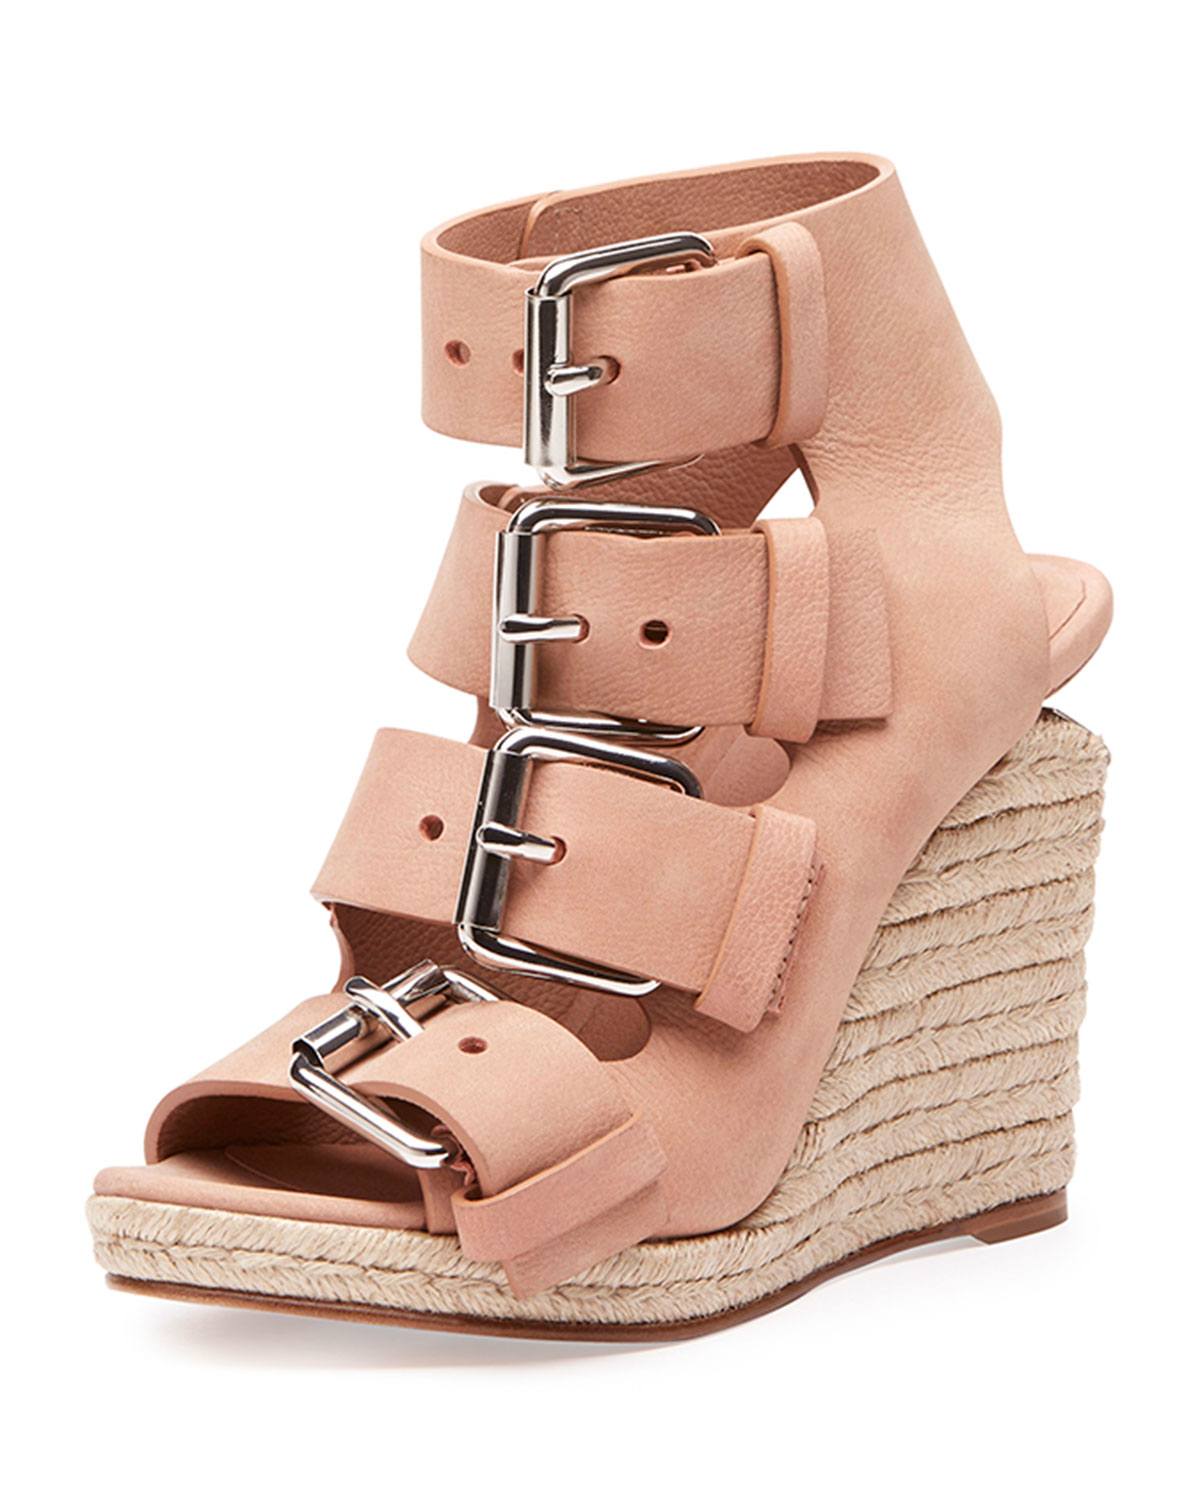 Alexander Wang Patent Leather Slide Wedges free shipping real free shipping best sale Dduw3aX6WL